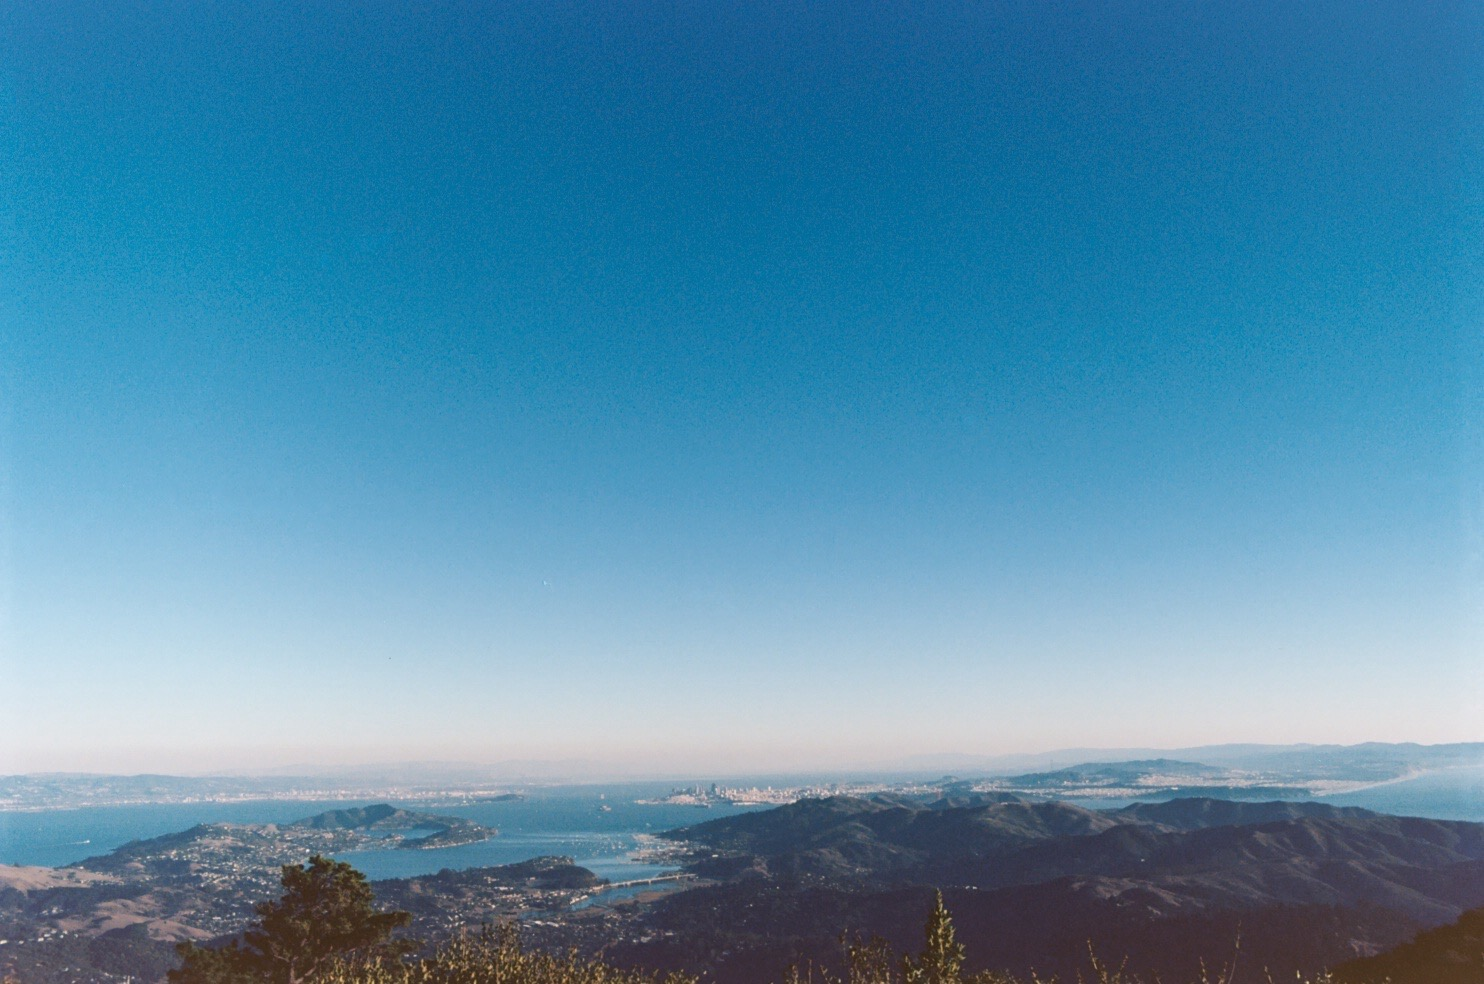 San Francisco/Oakland from the top of Mt. Tam